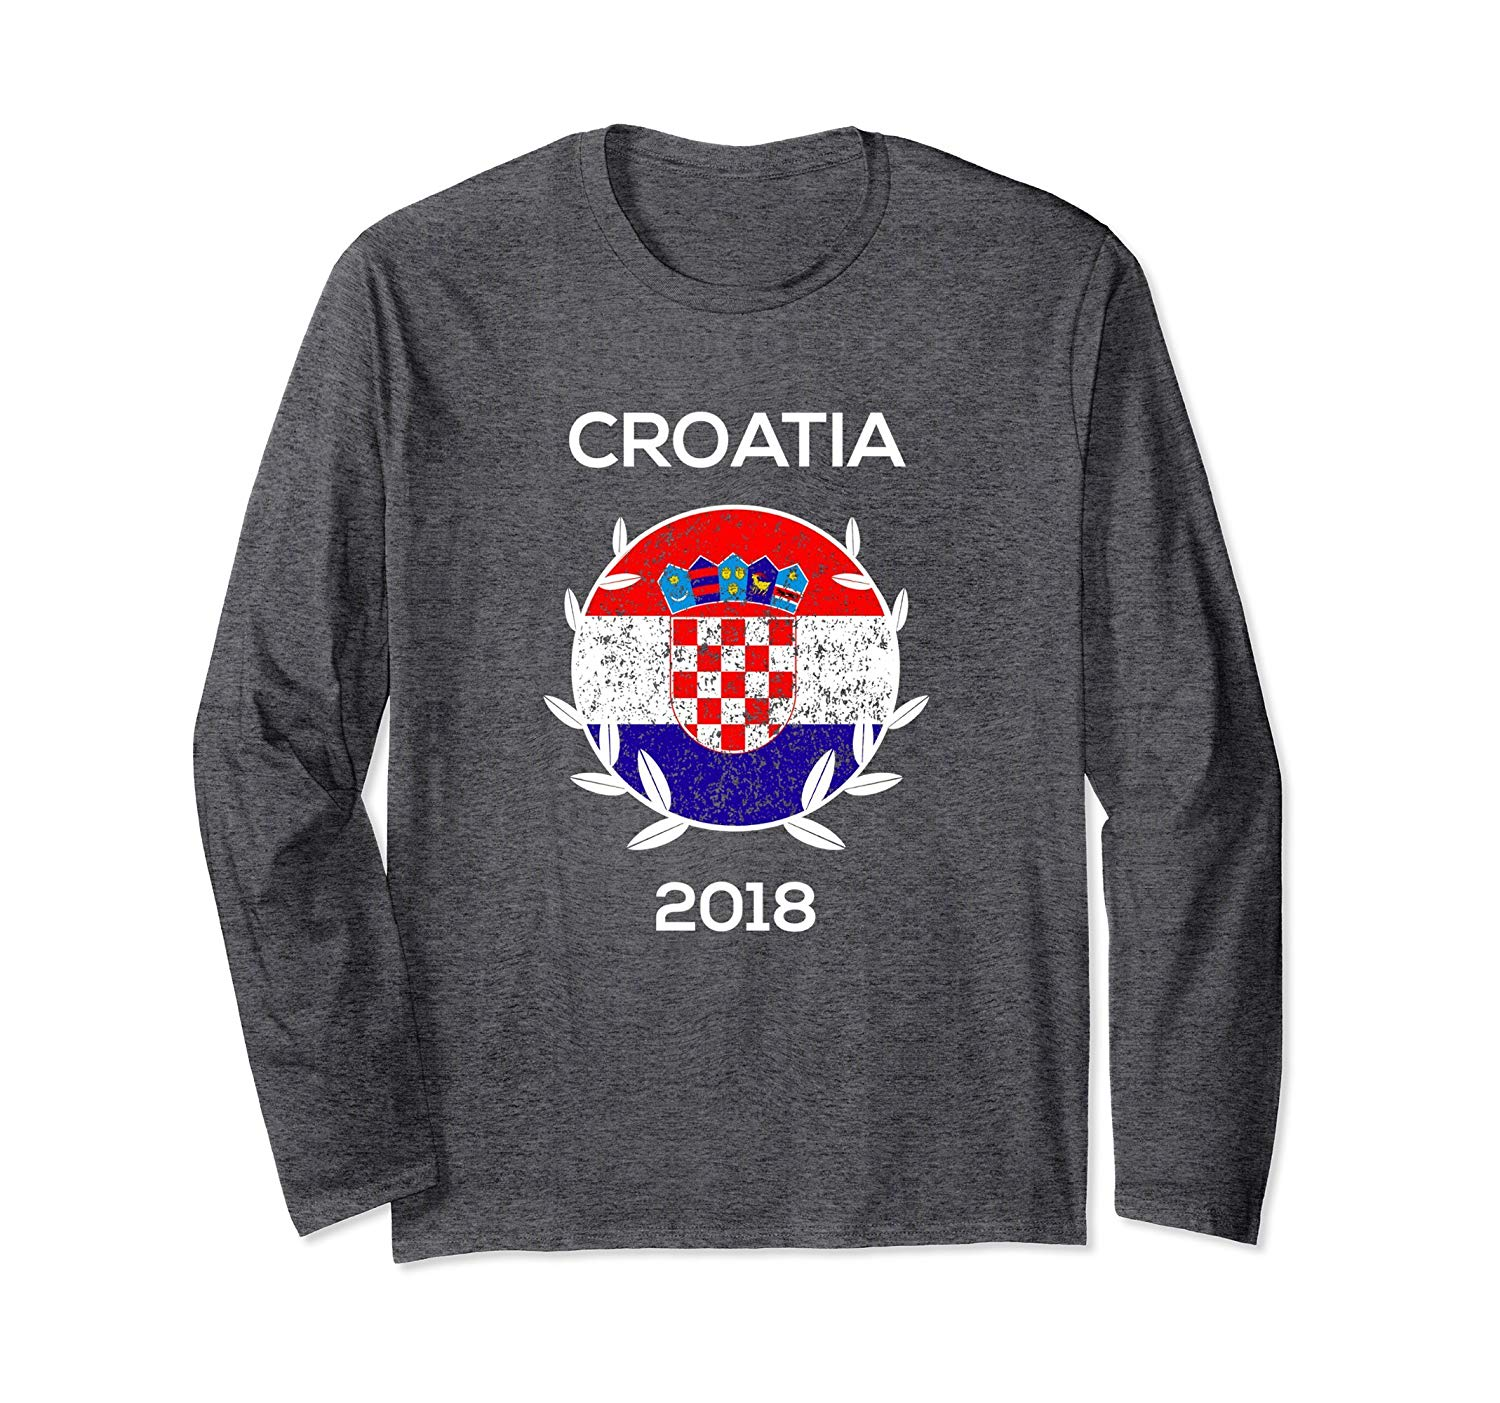 e03cccec64b 2018 19 New Croatia Modric Away Men s Soccer Jersey. Get Quotations · Croatia  Soccer Long Sleeve Shirt 2018 Cup Fan Gear